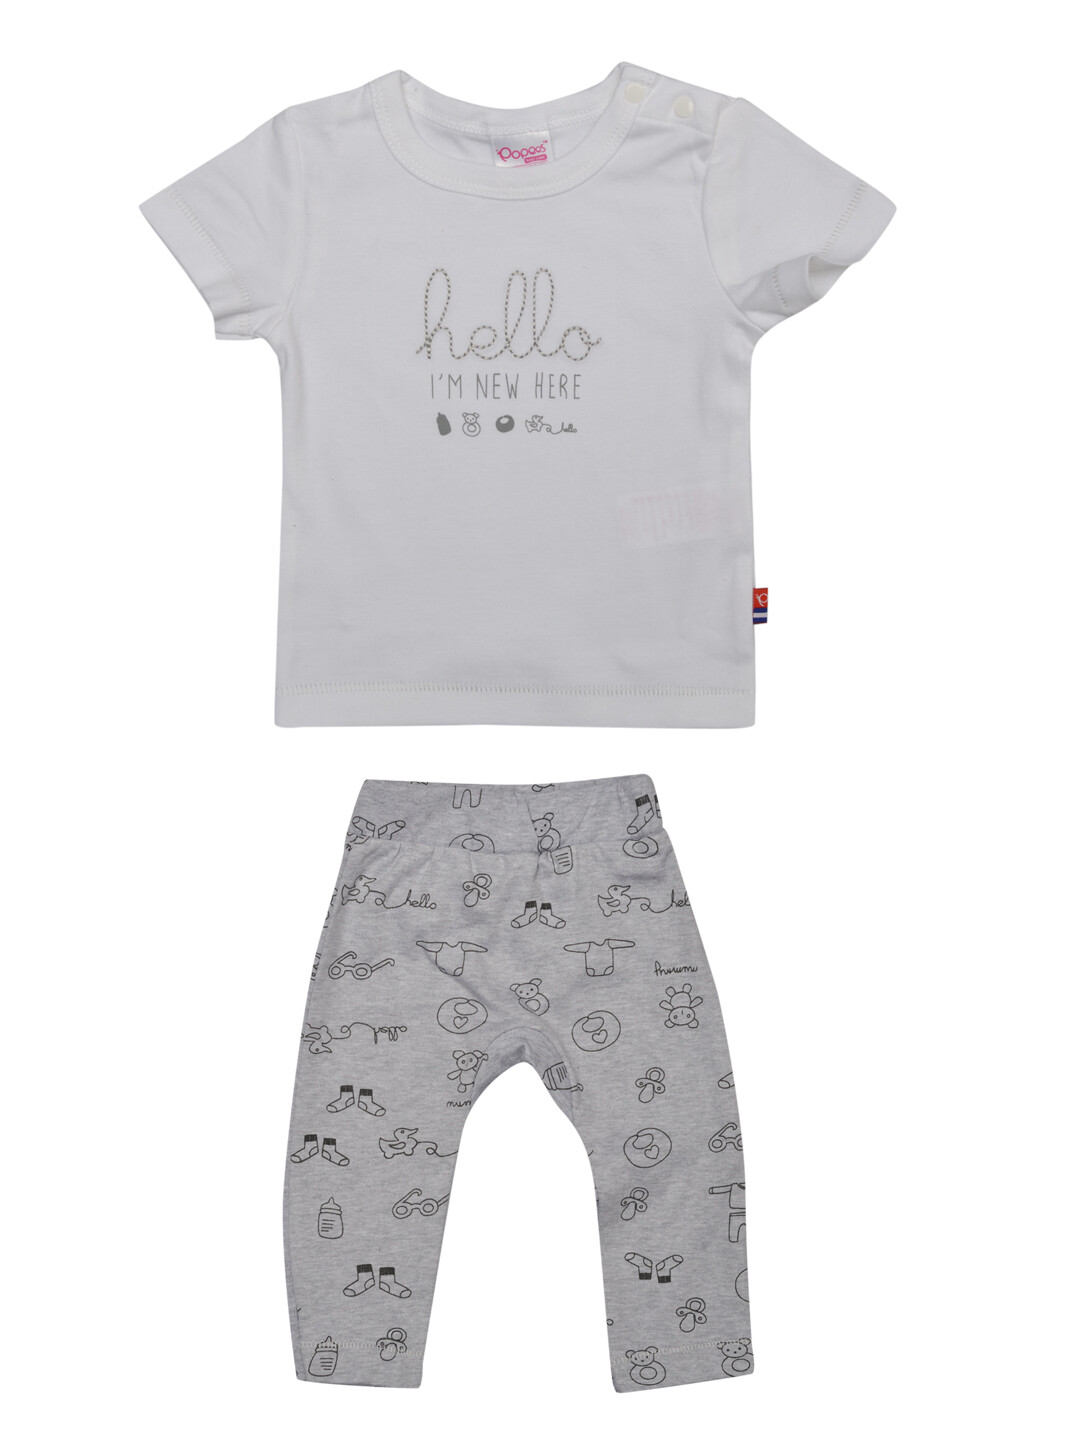 Qubee White Half Sleeves Round Neck T-Shirt with Printed Lounge Pant